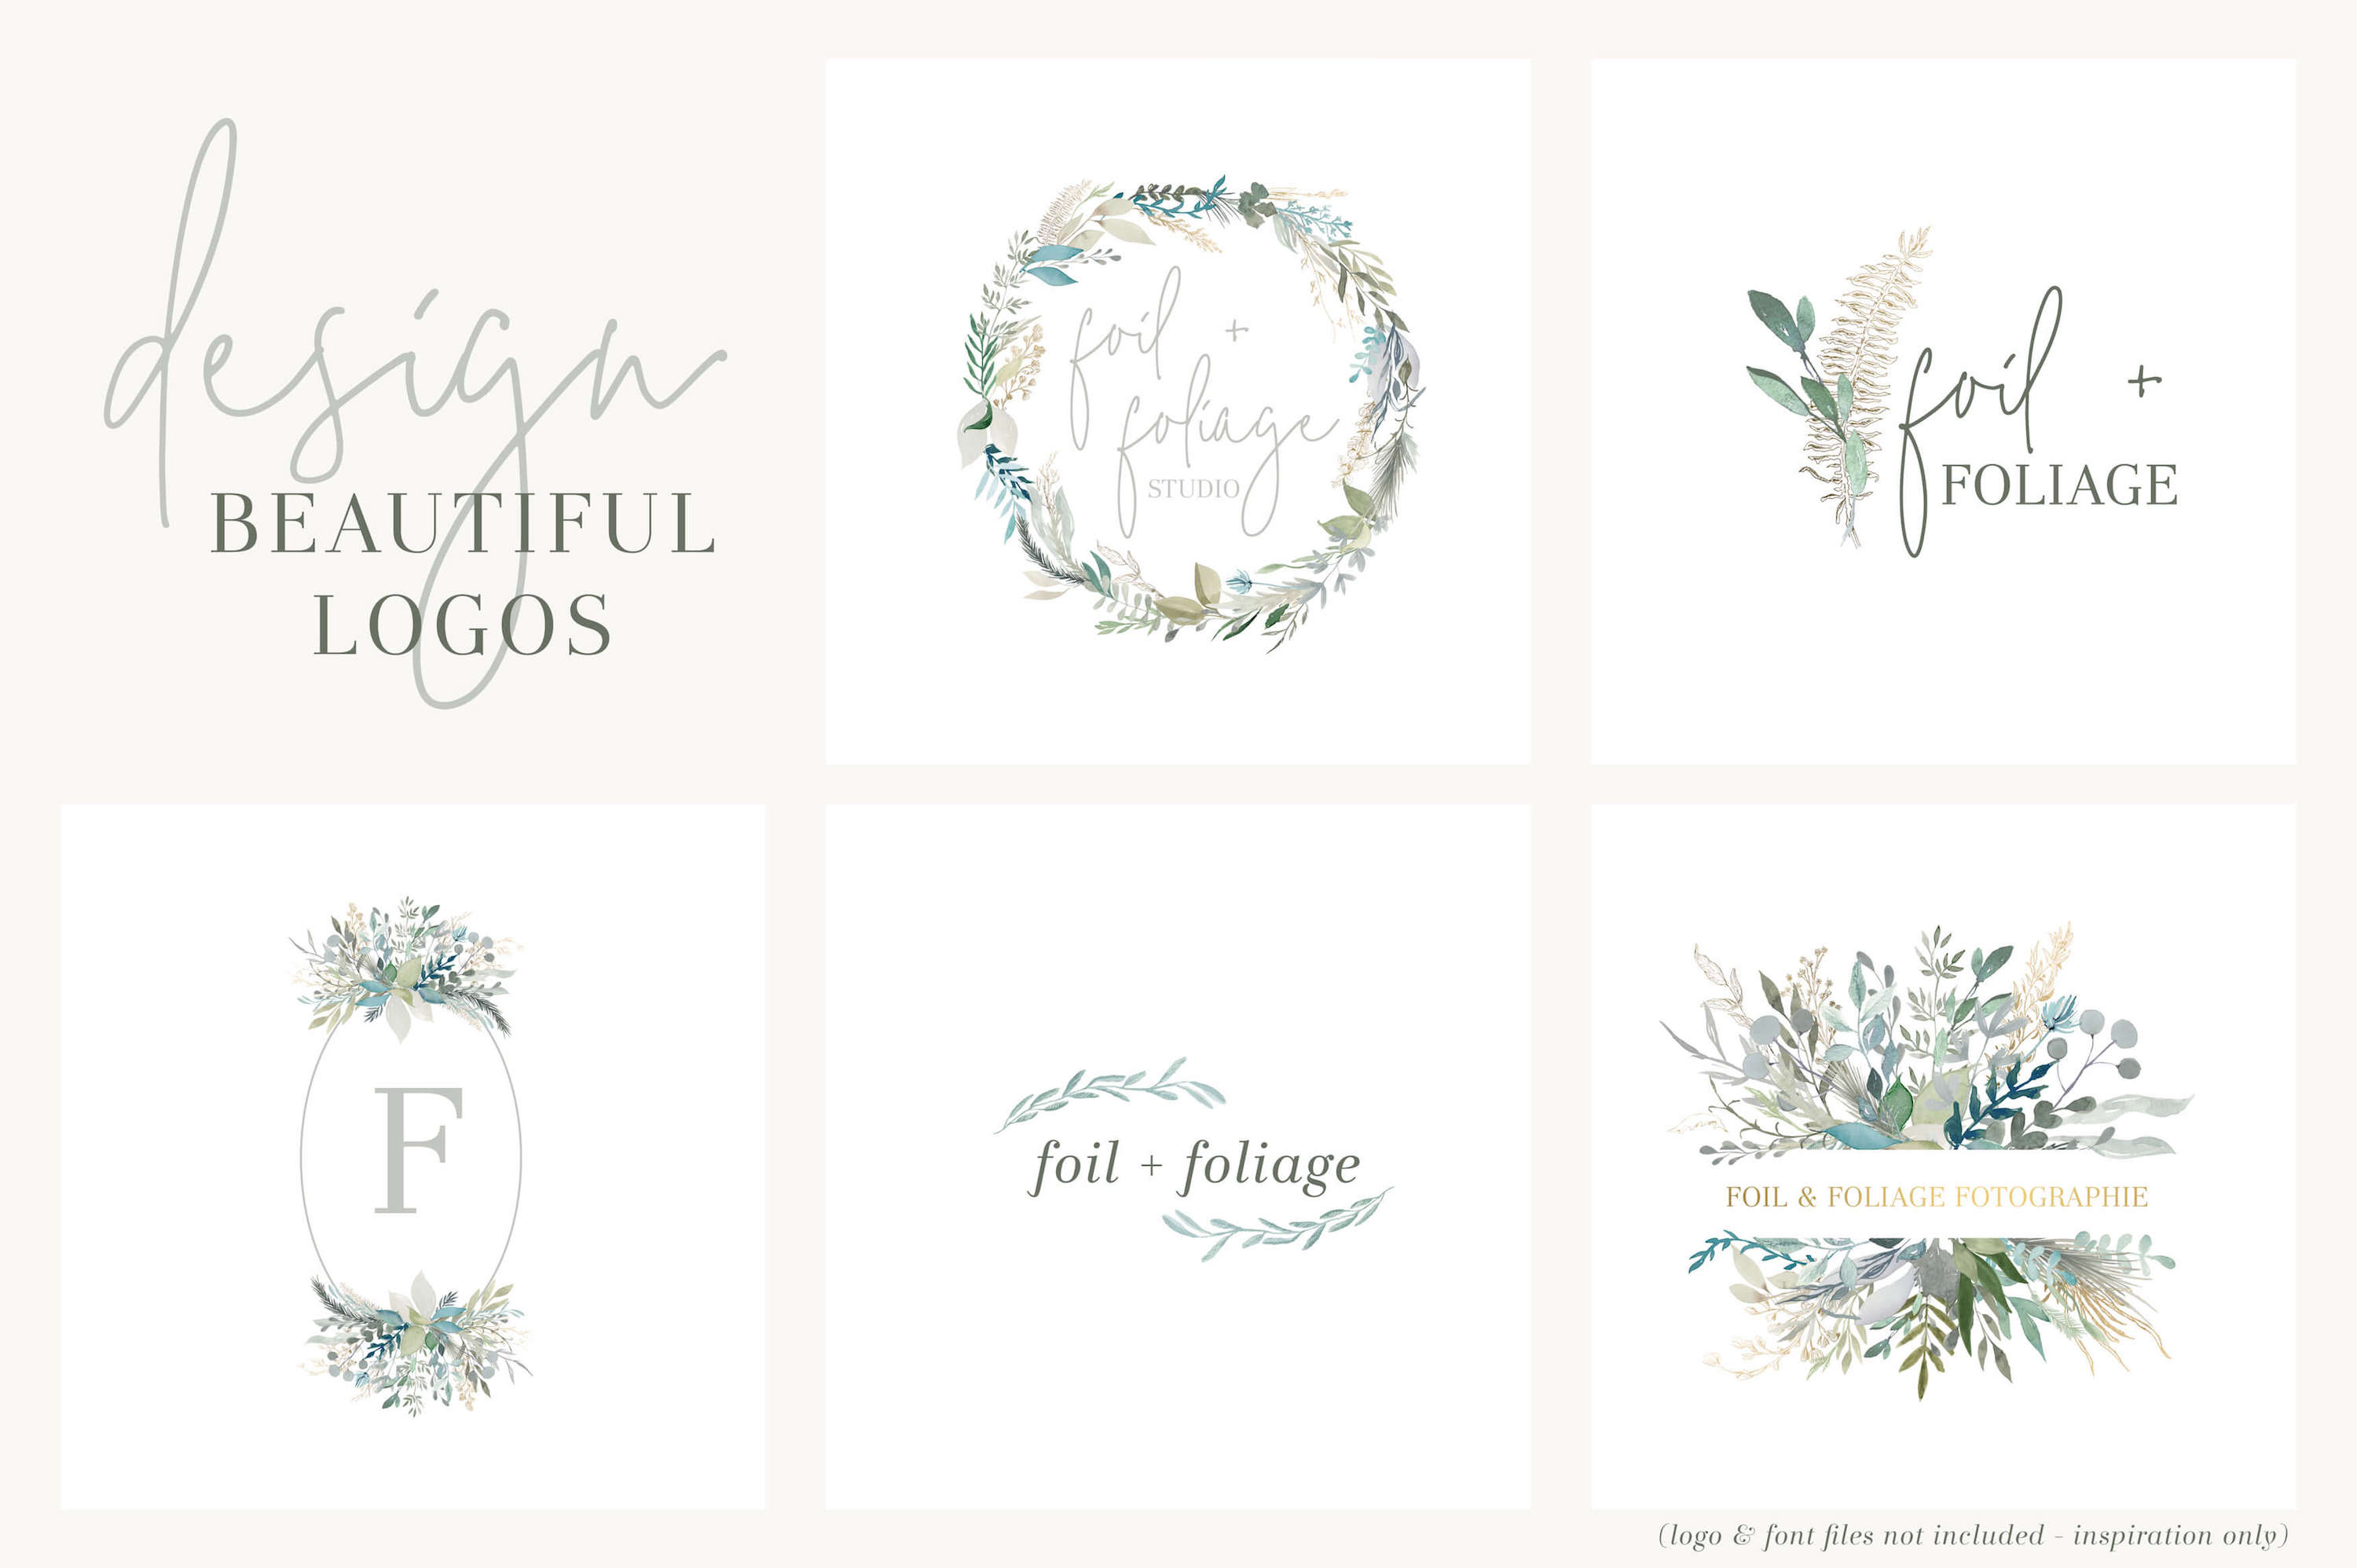 Foliage and Foil Botanical Clipart example image 5